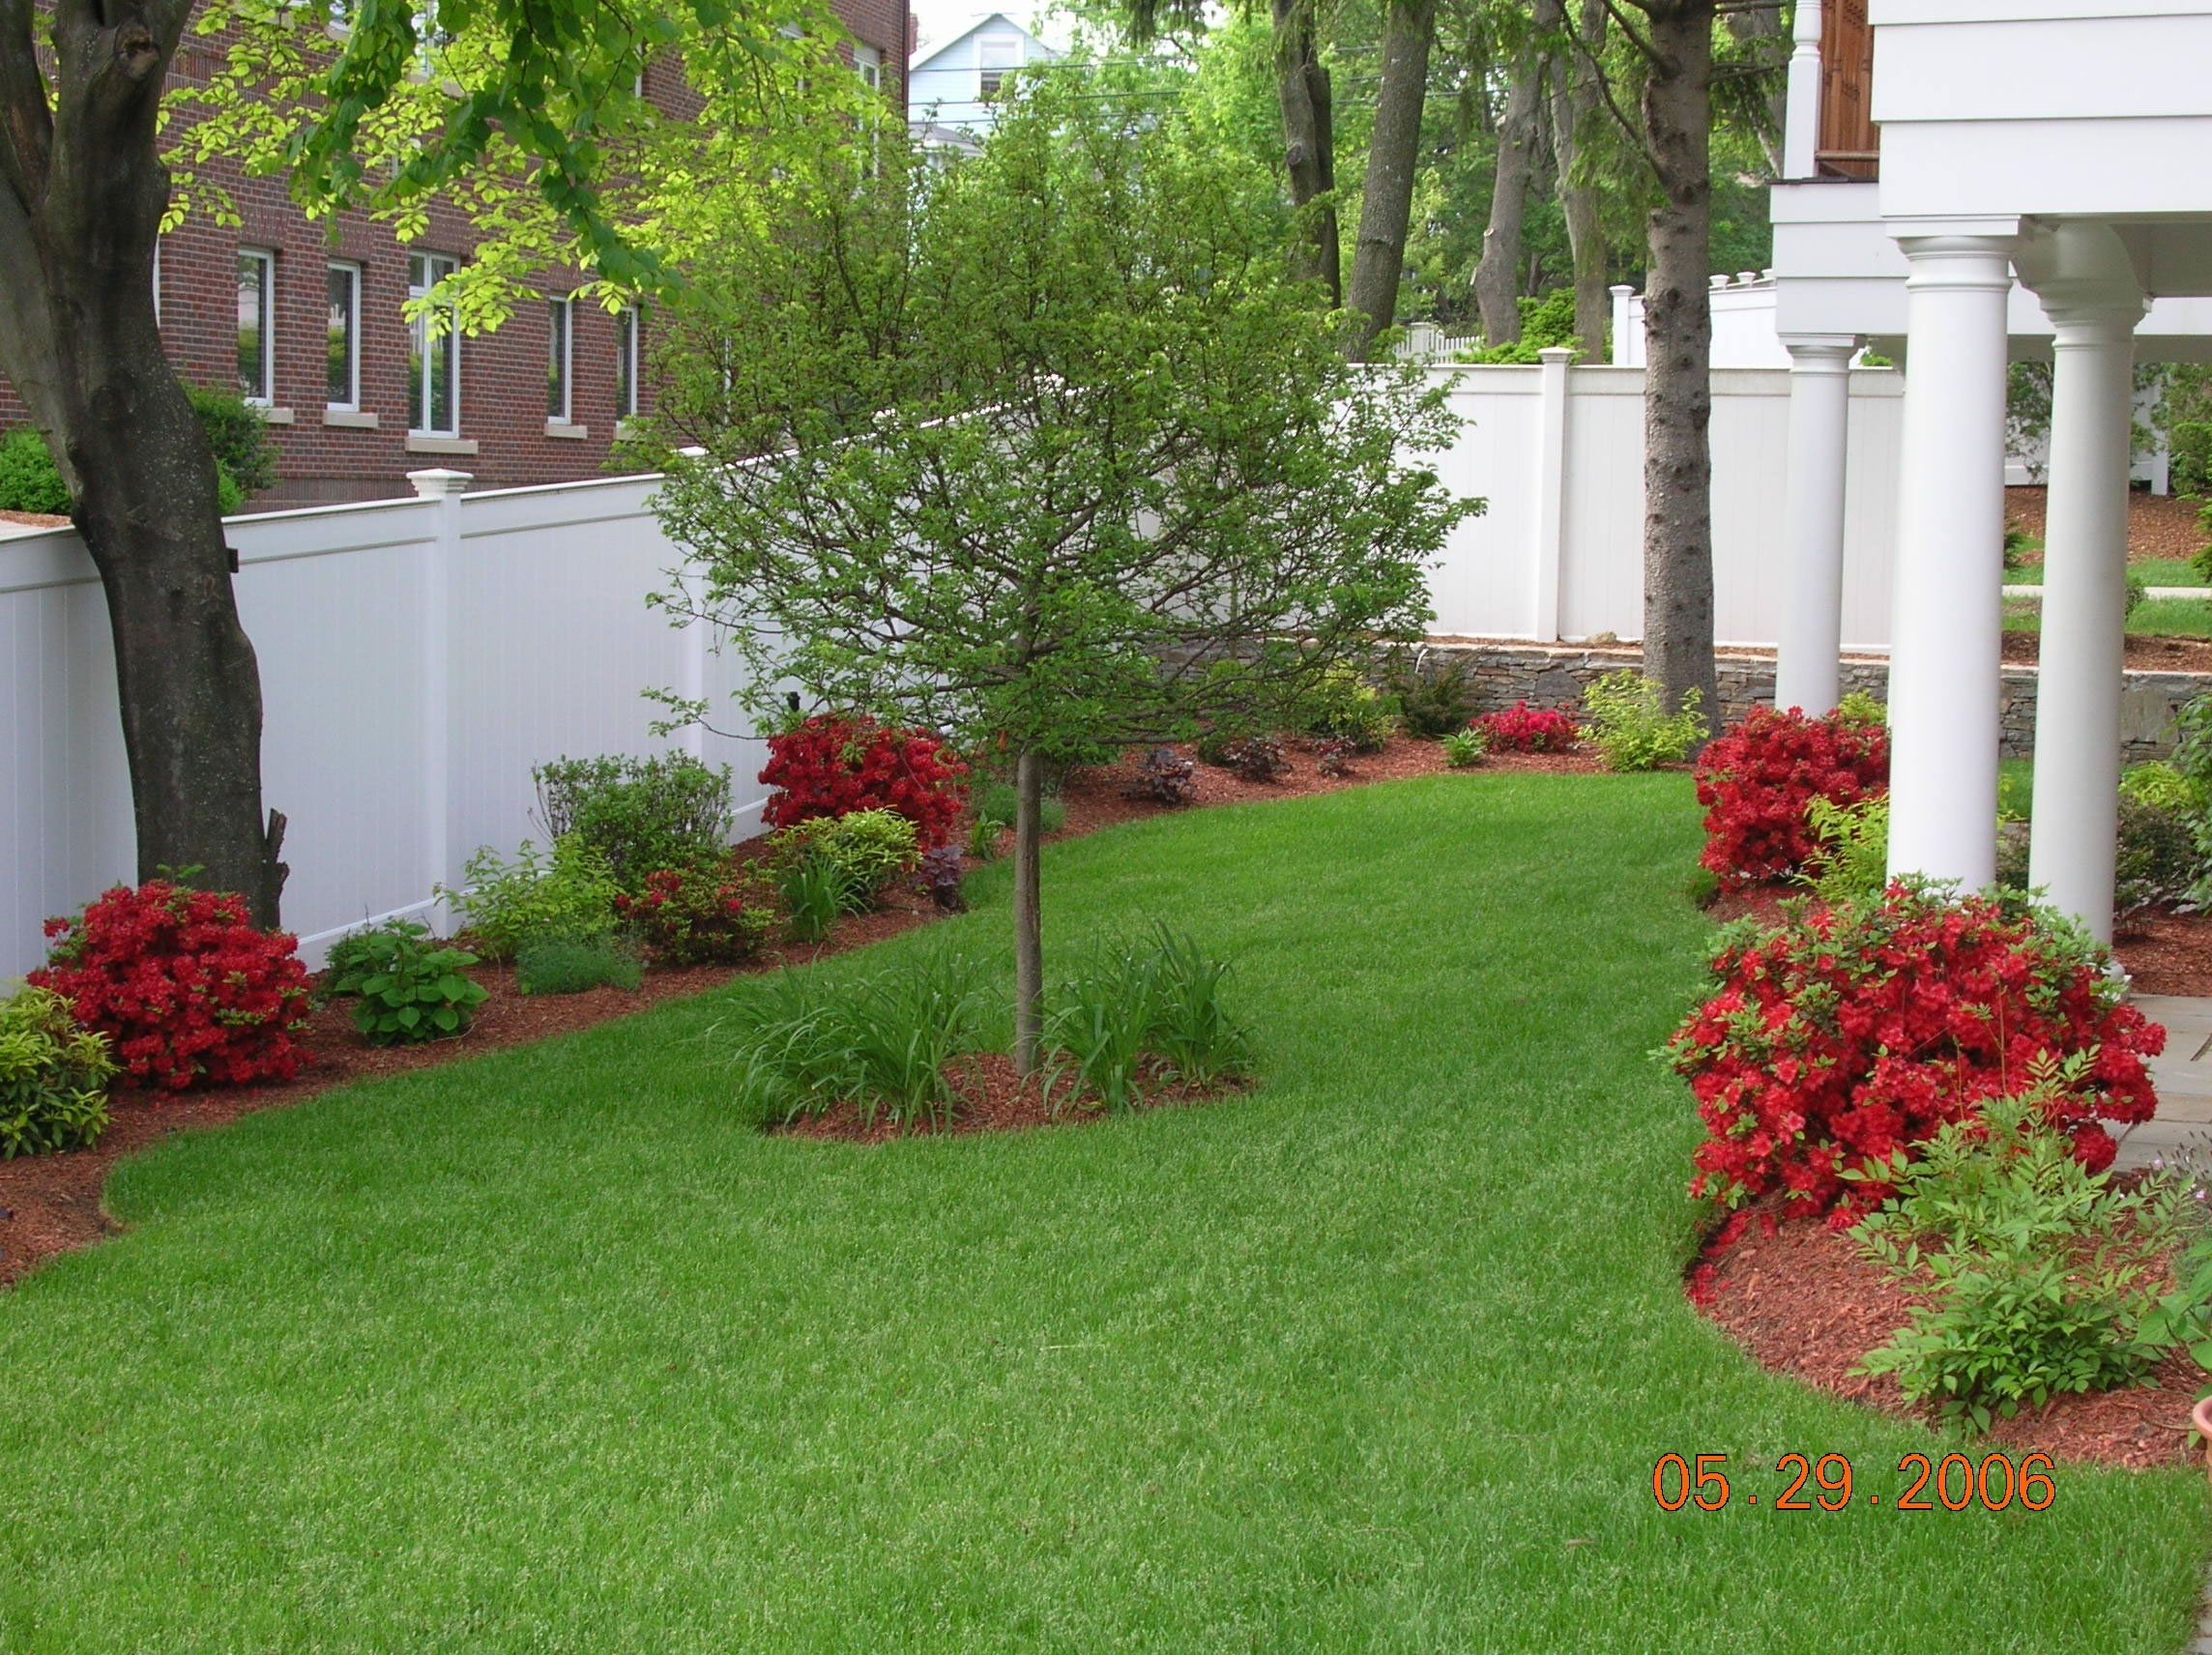 Top 10 simple diy landscaping ideas seek diy for Patio landscaping ideas